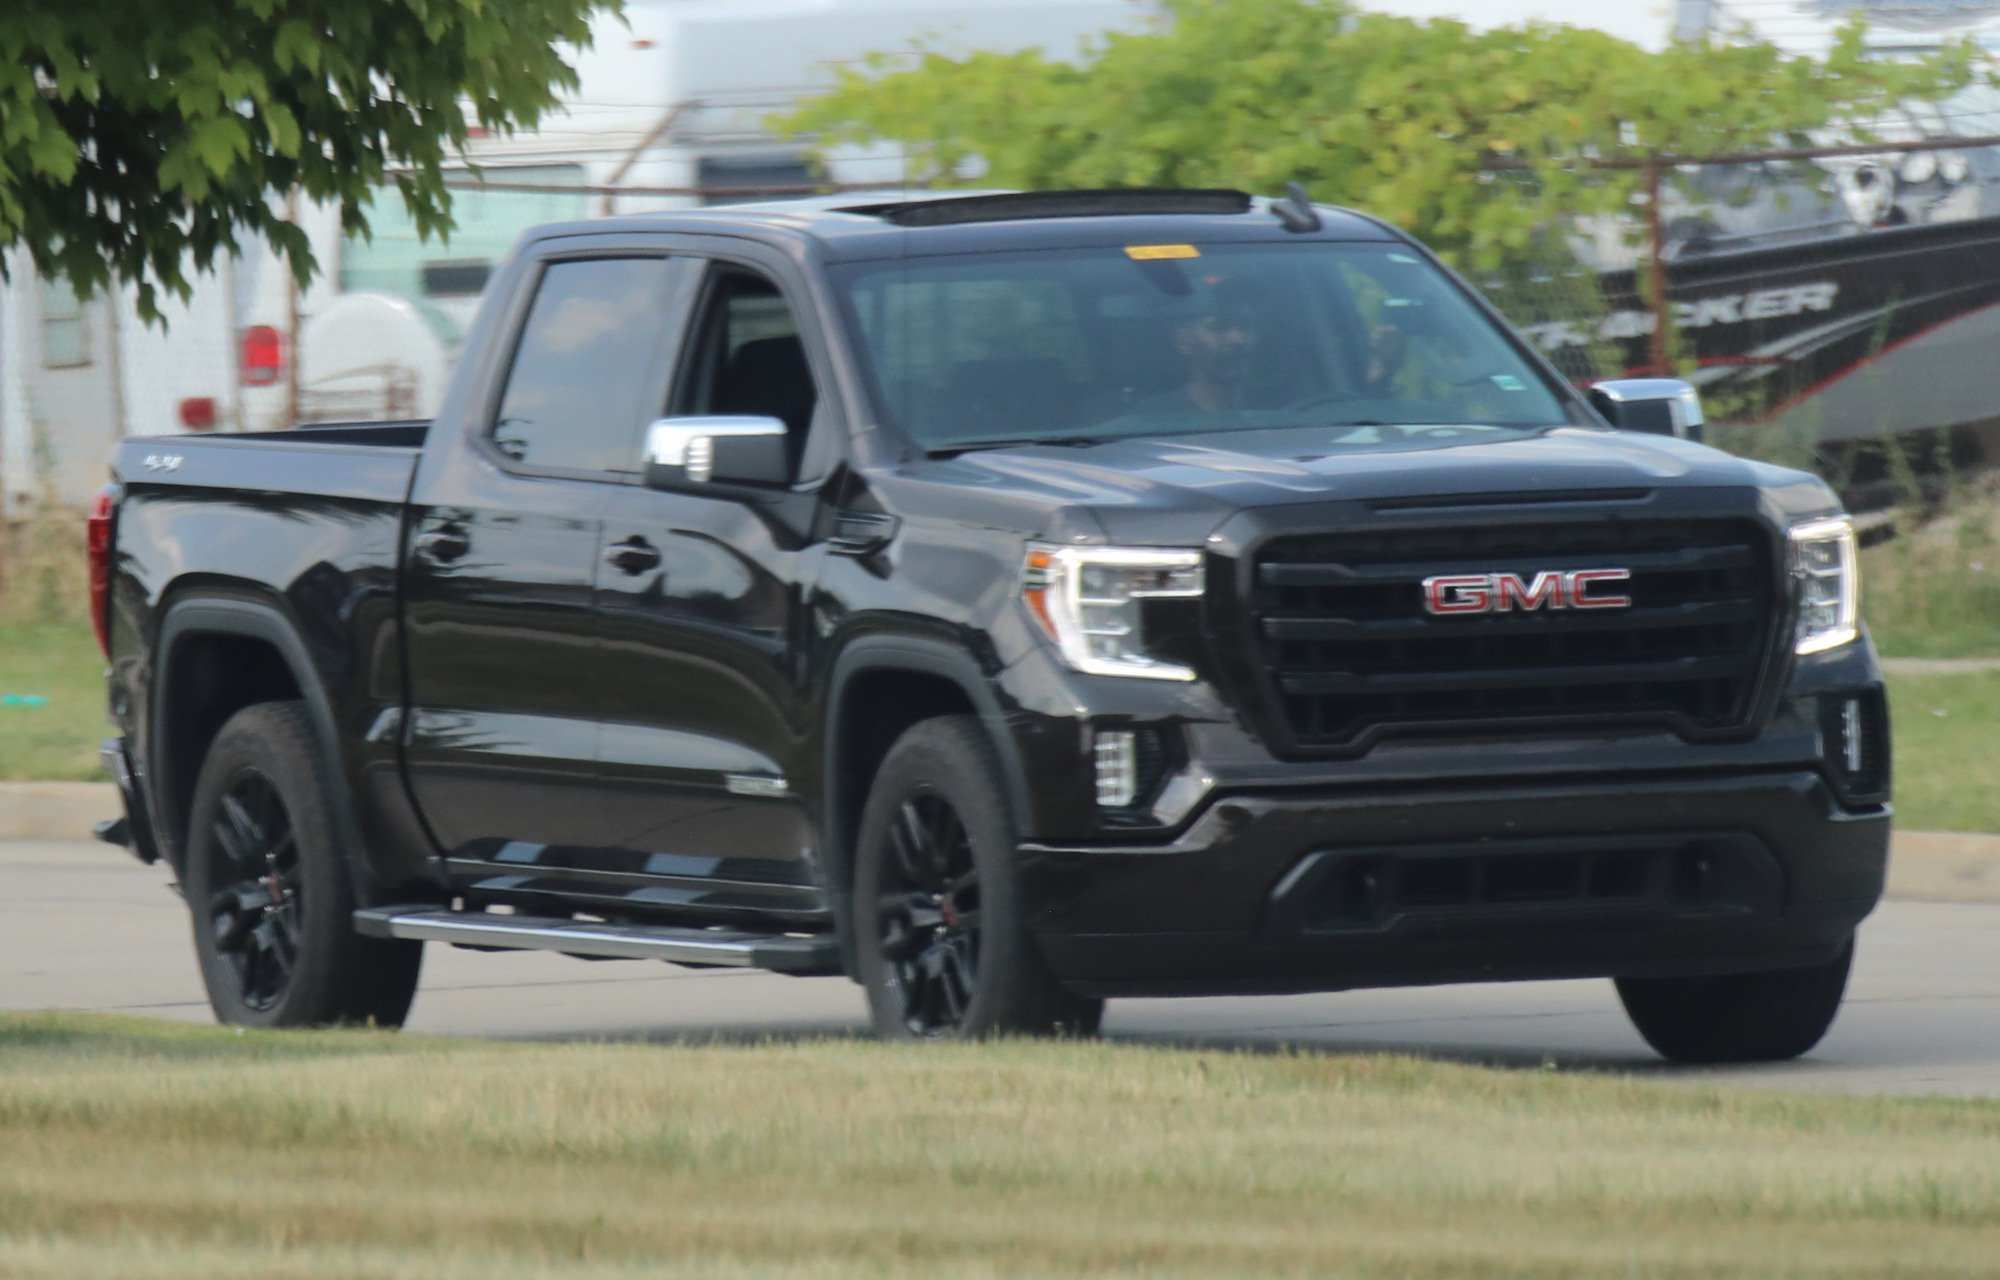 25 Concept of Best 2019 Gmc Box Rumors Research New for Best 2019 Gmc Box Rumors